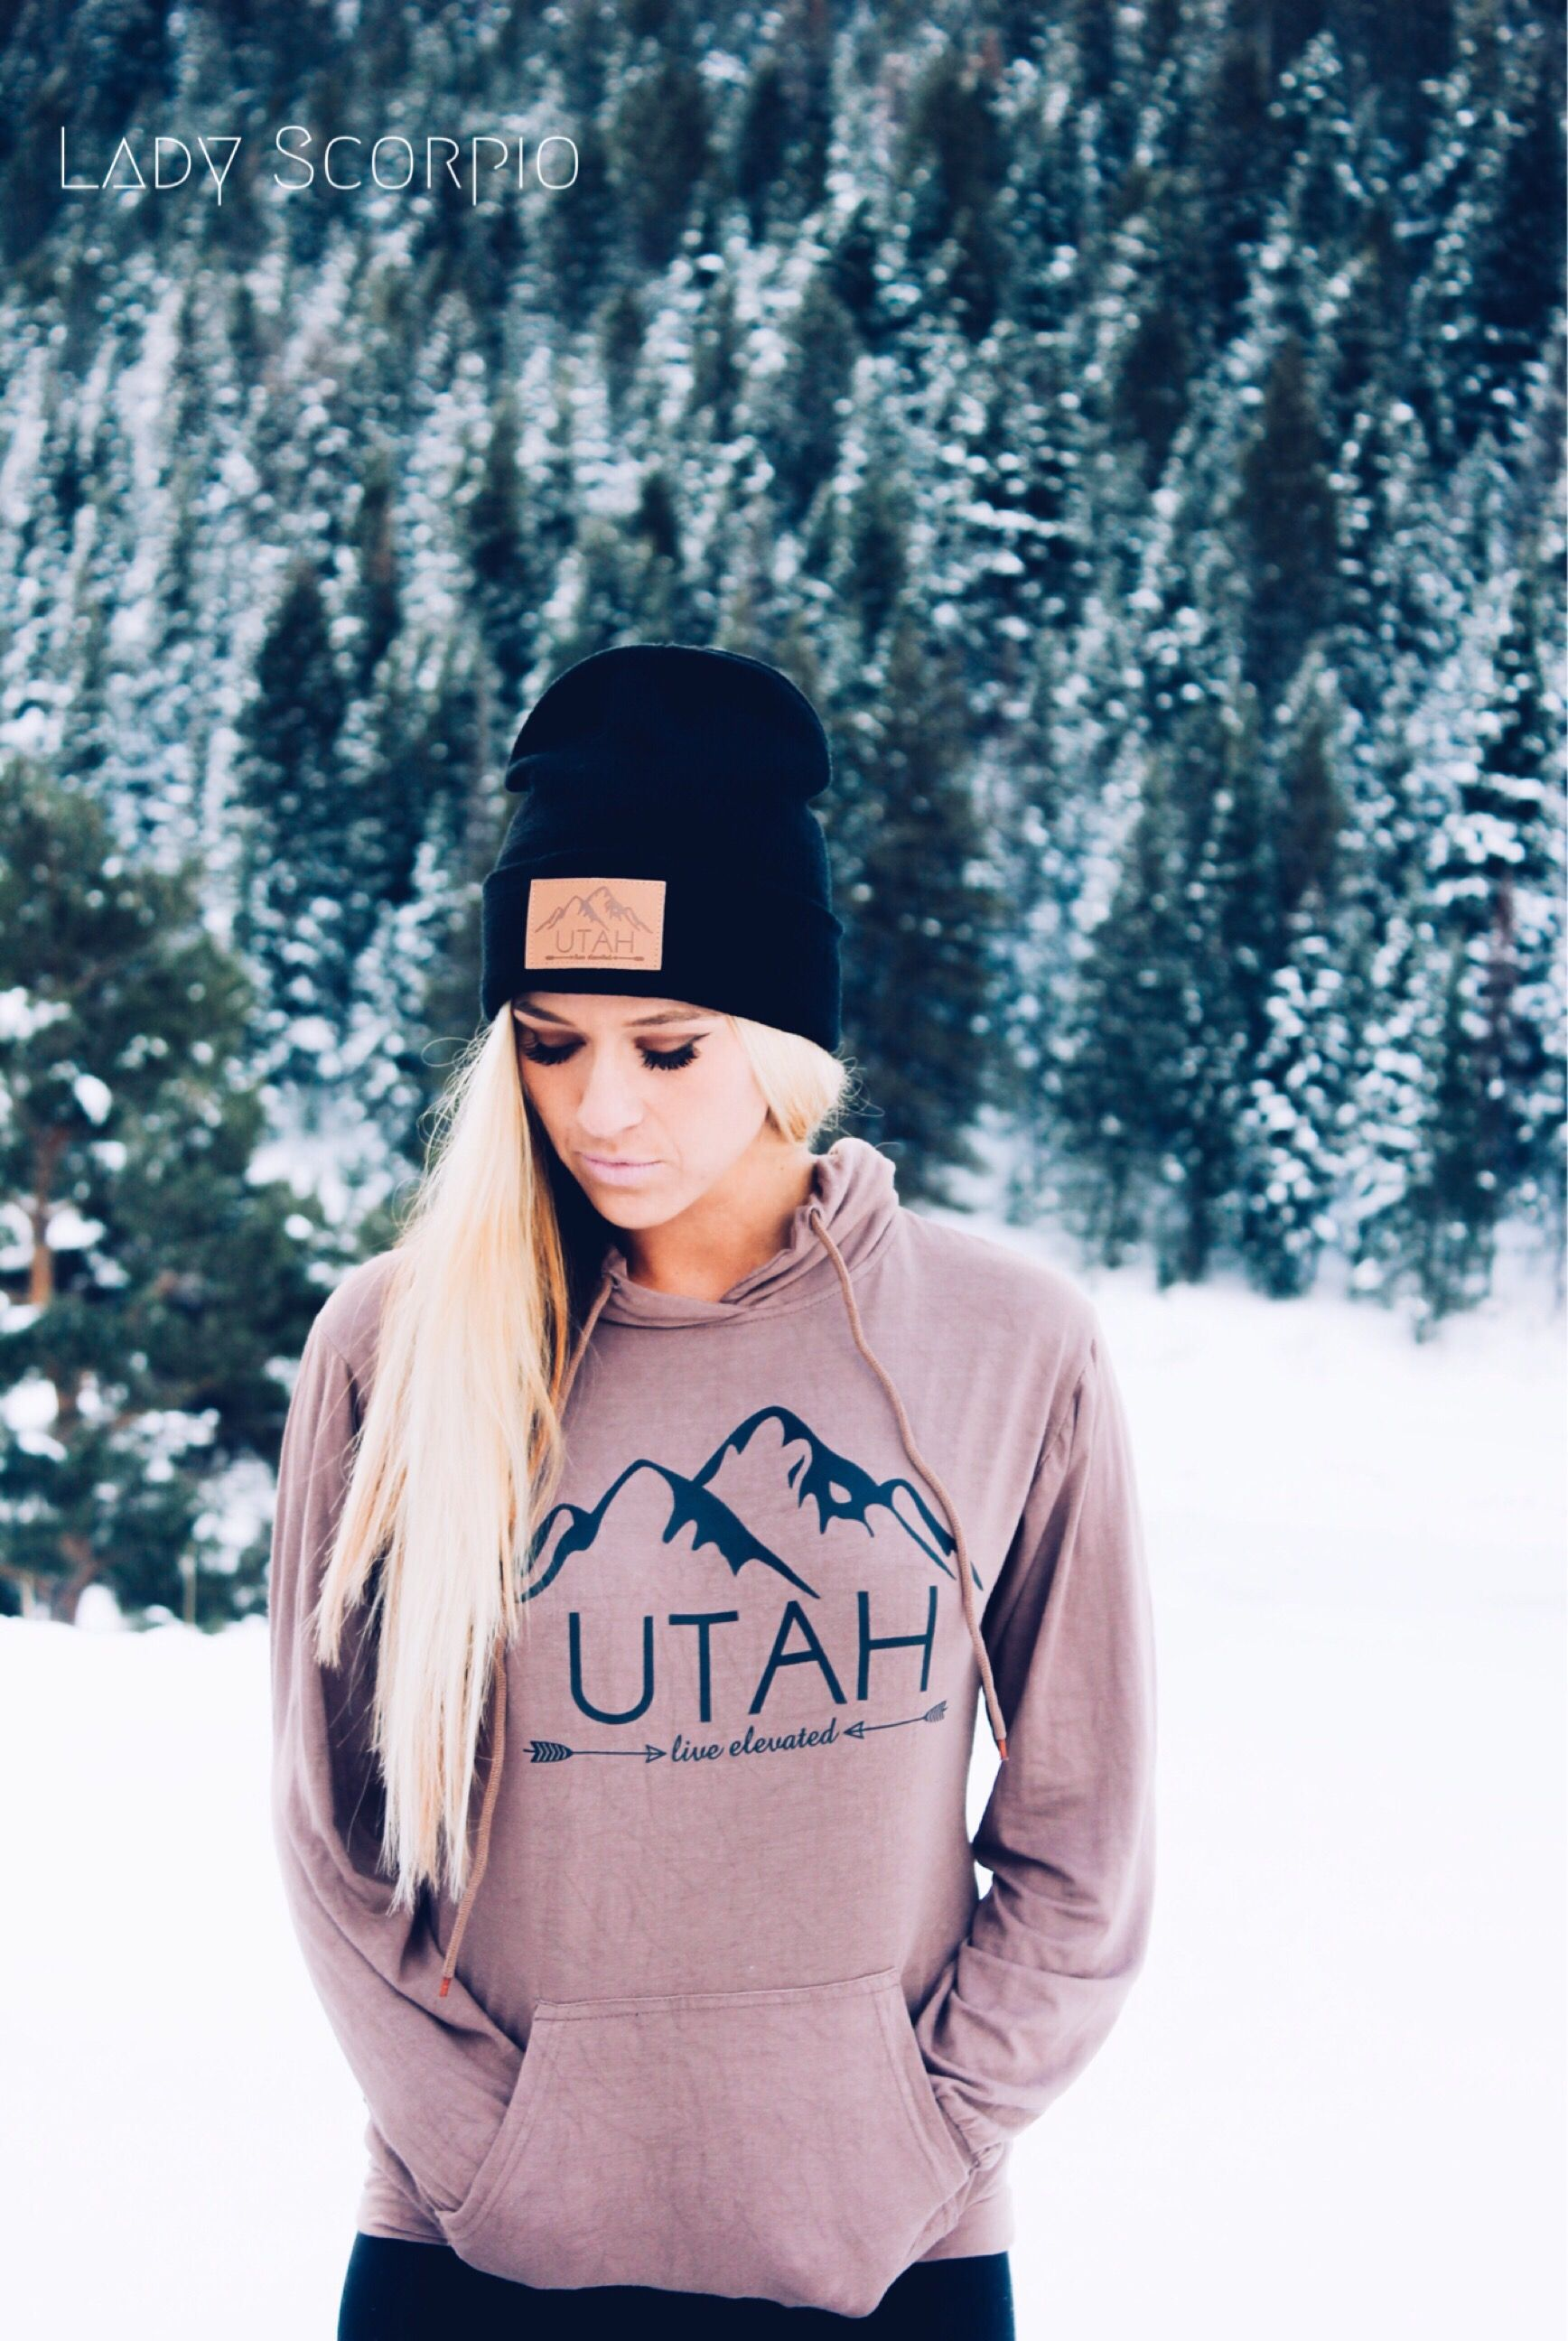 Wanderlust in the Mountains of UTAH Lady Scorpio Inspire your